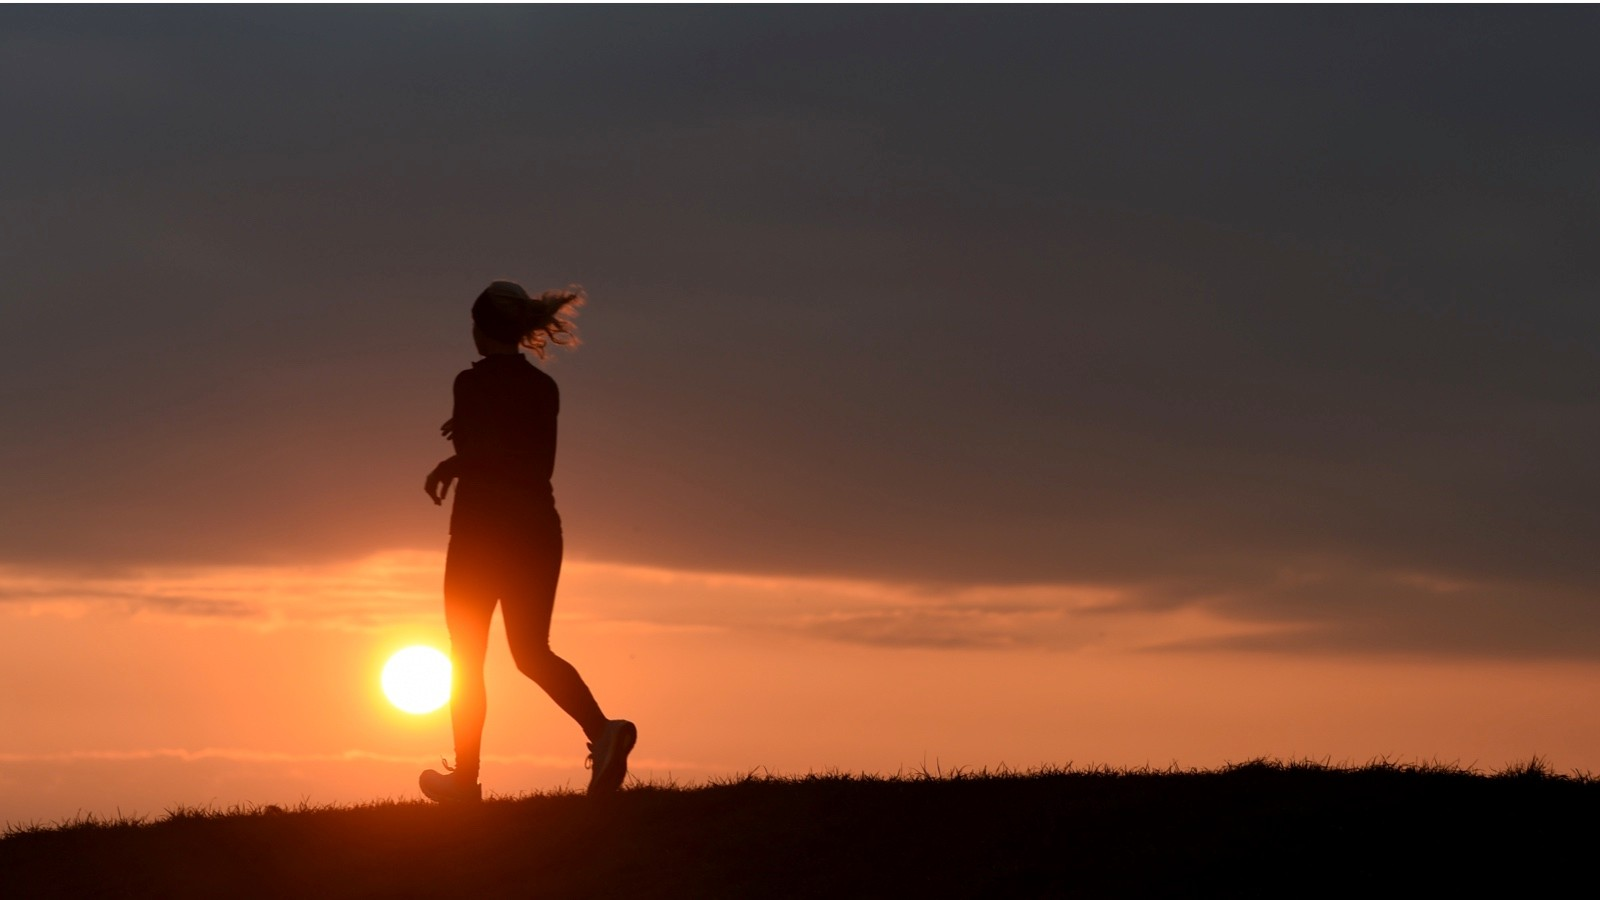 Like cycling, running can be particularly addictive